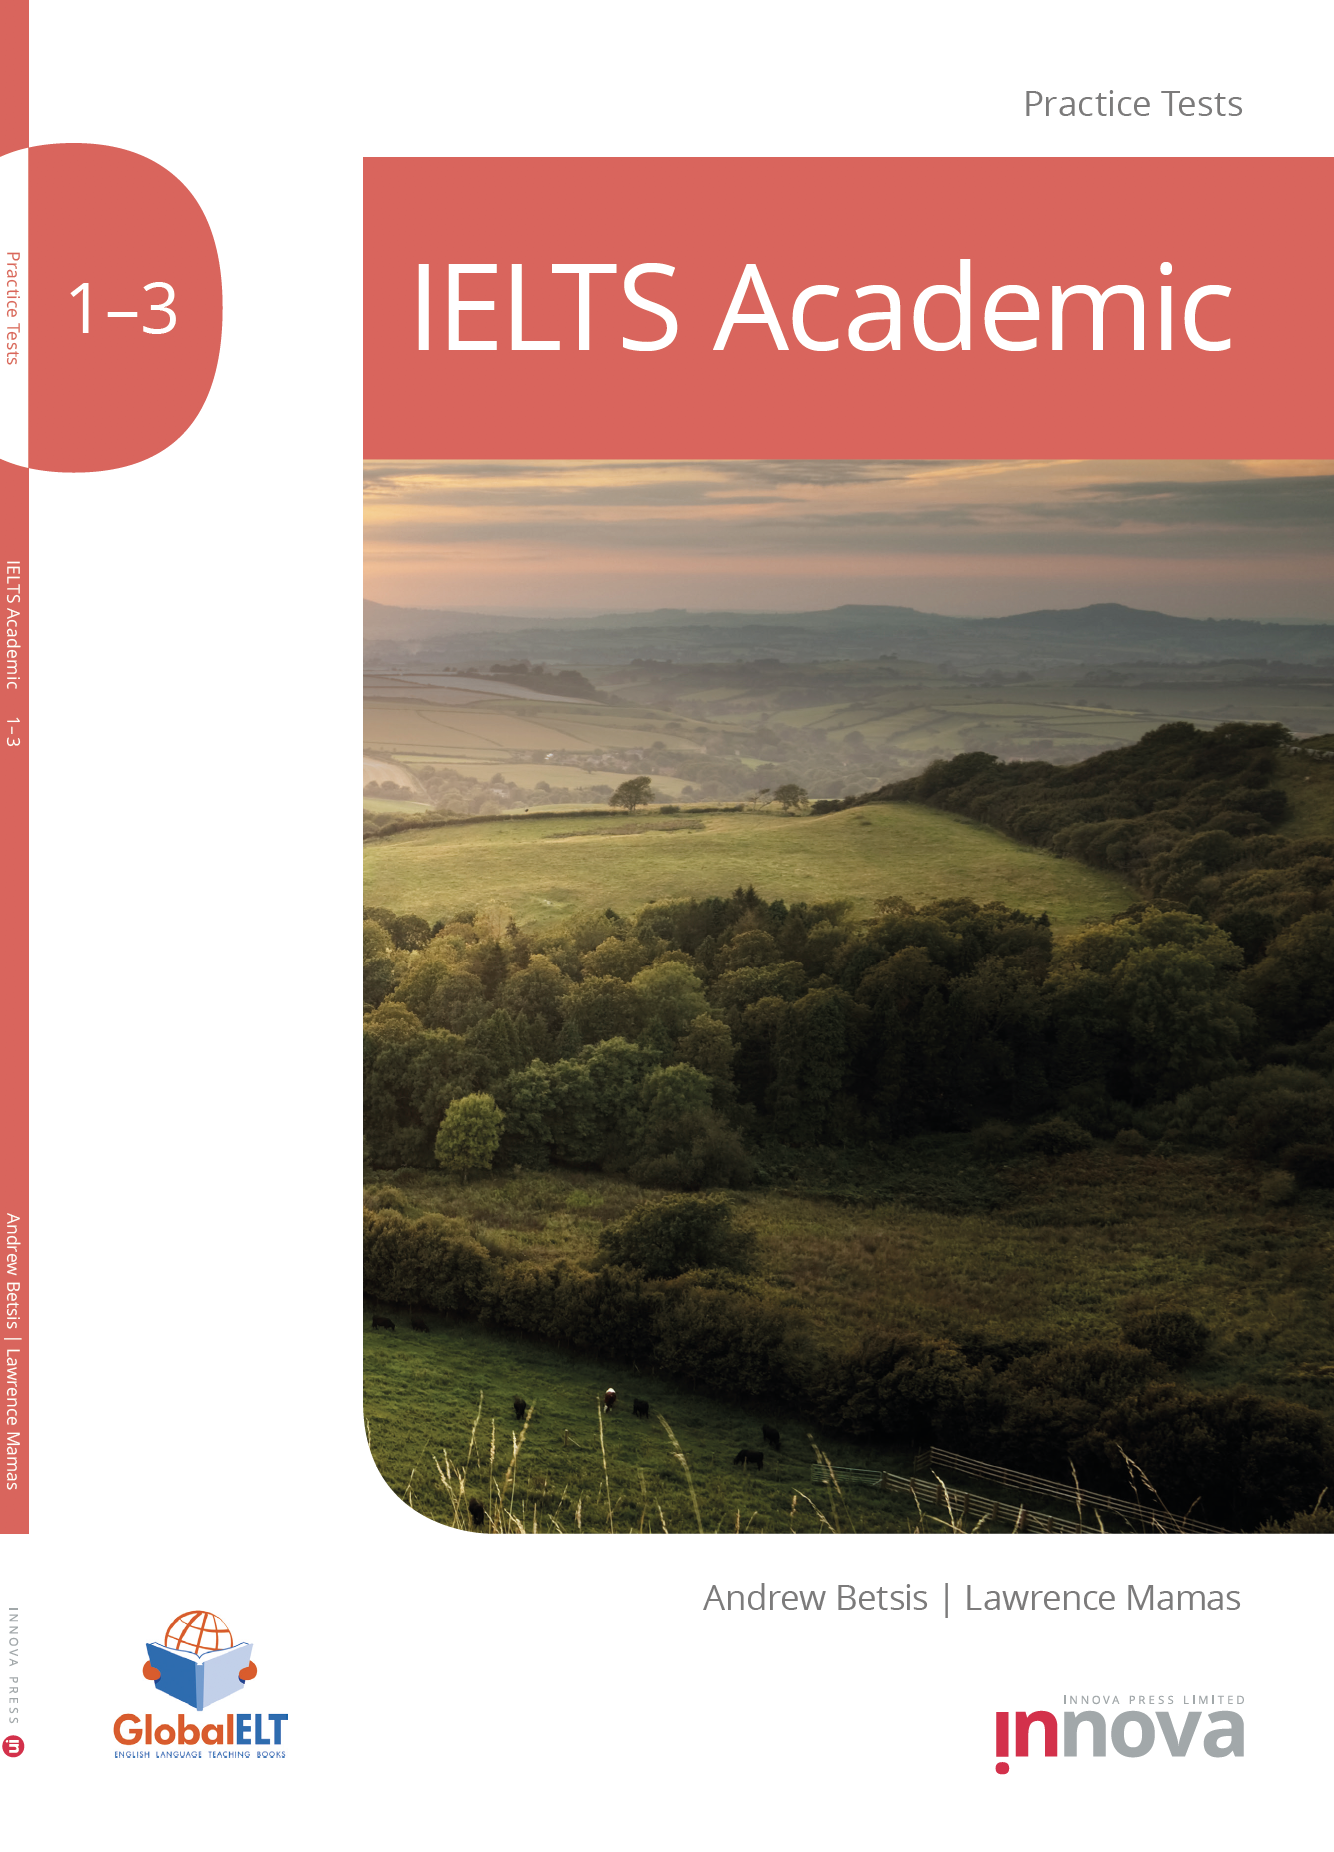 Innova Press IELTS Academic Practice Tests 1-3 cover, countryside